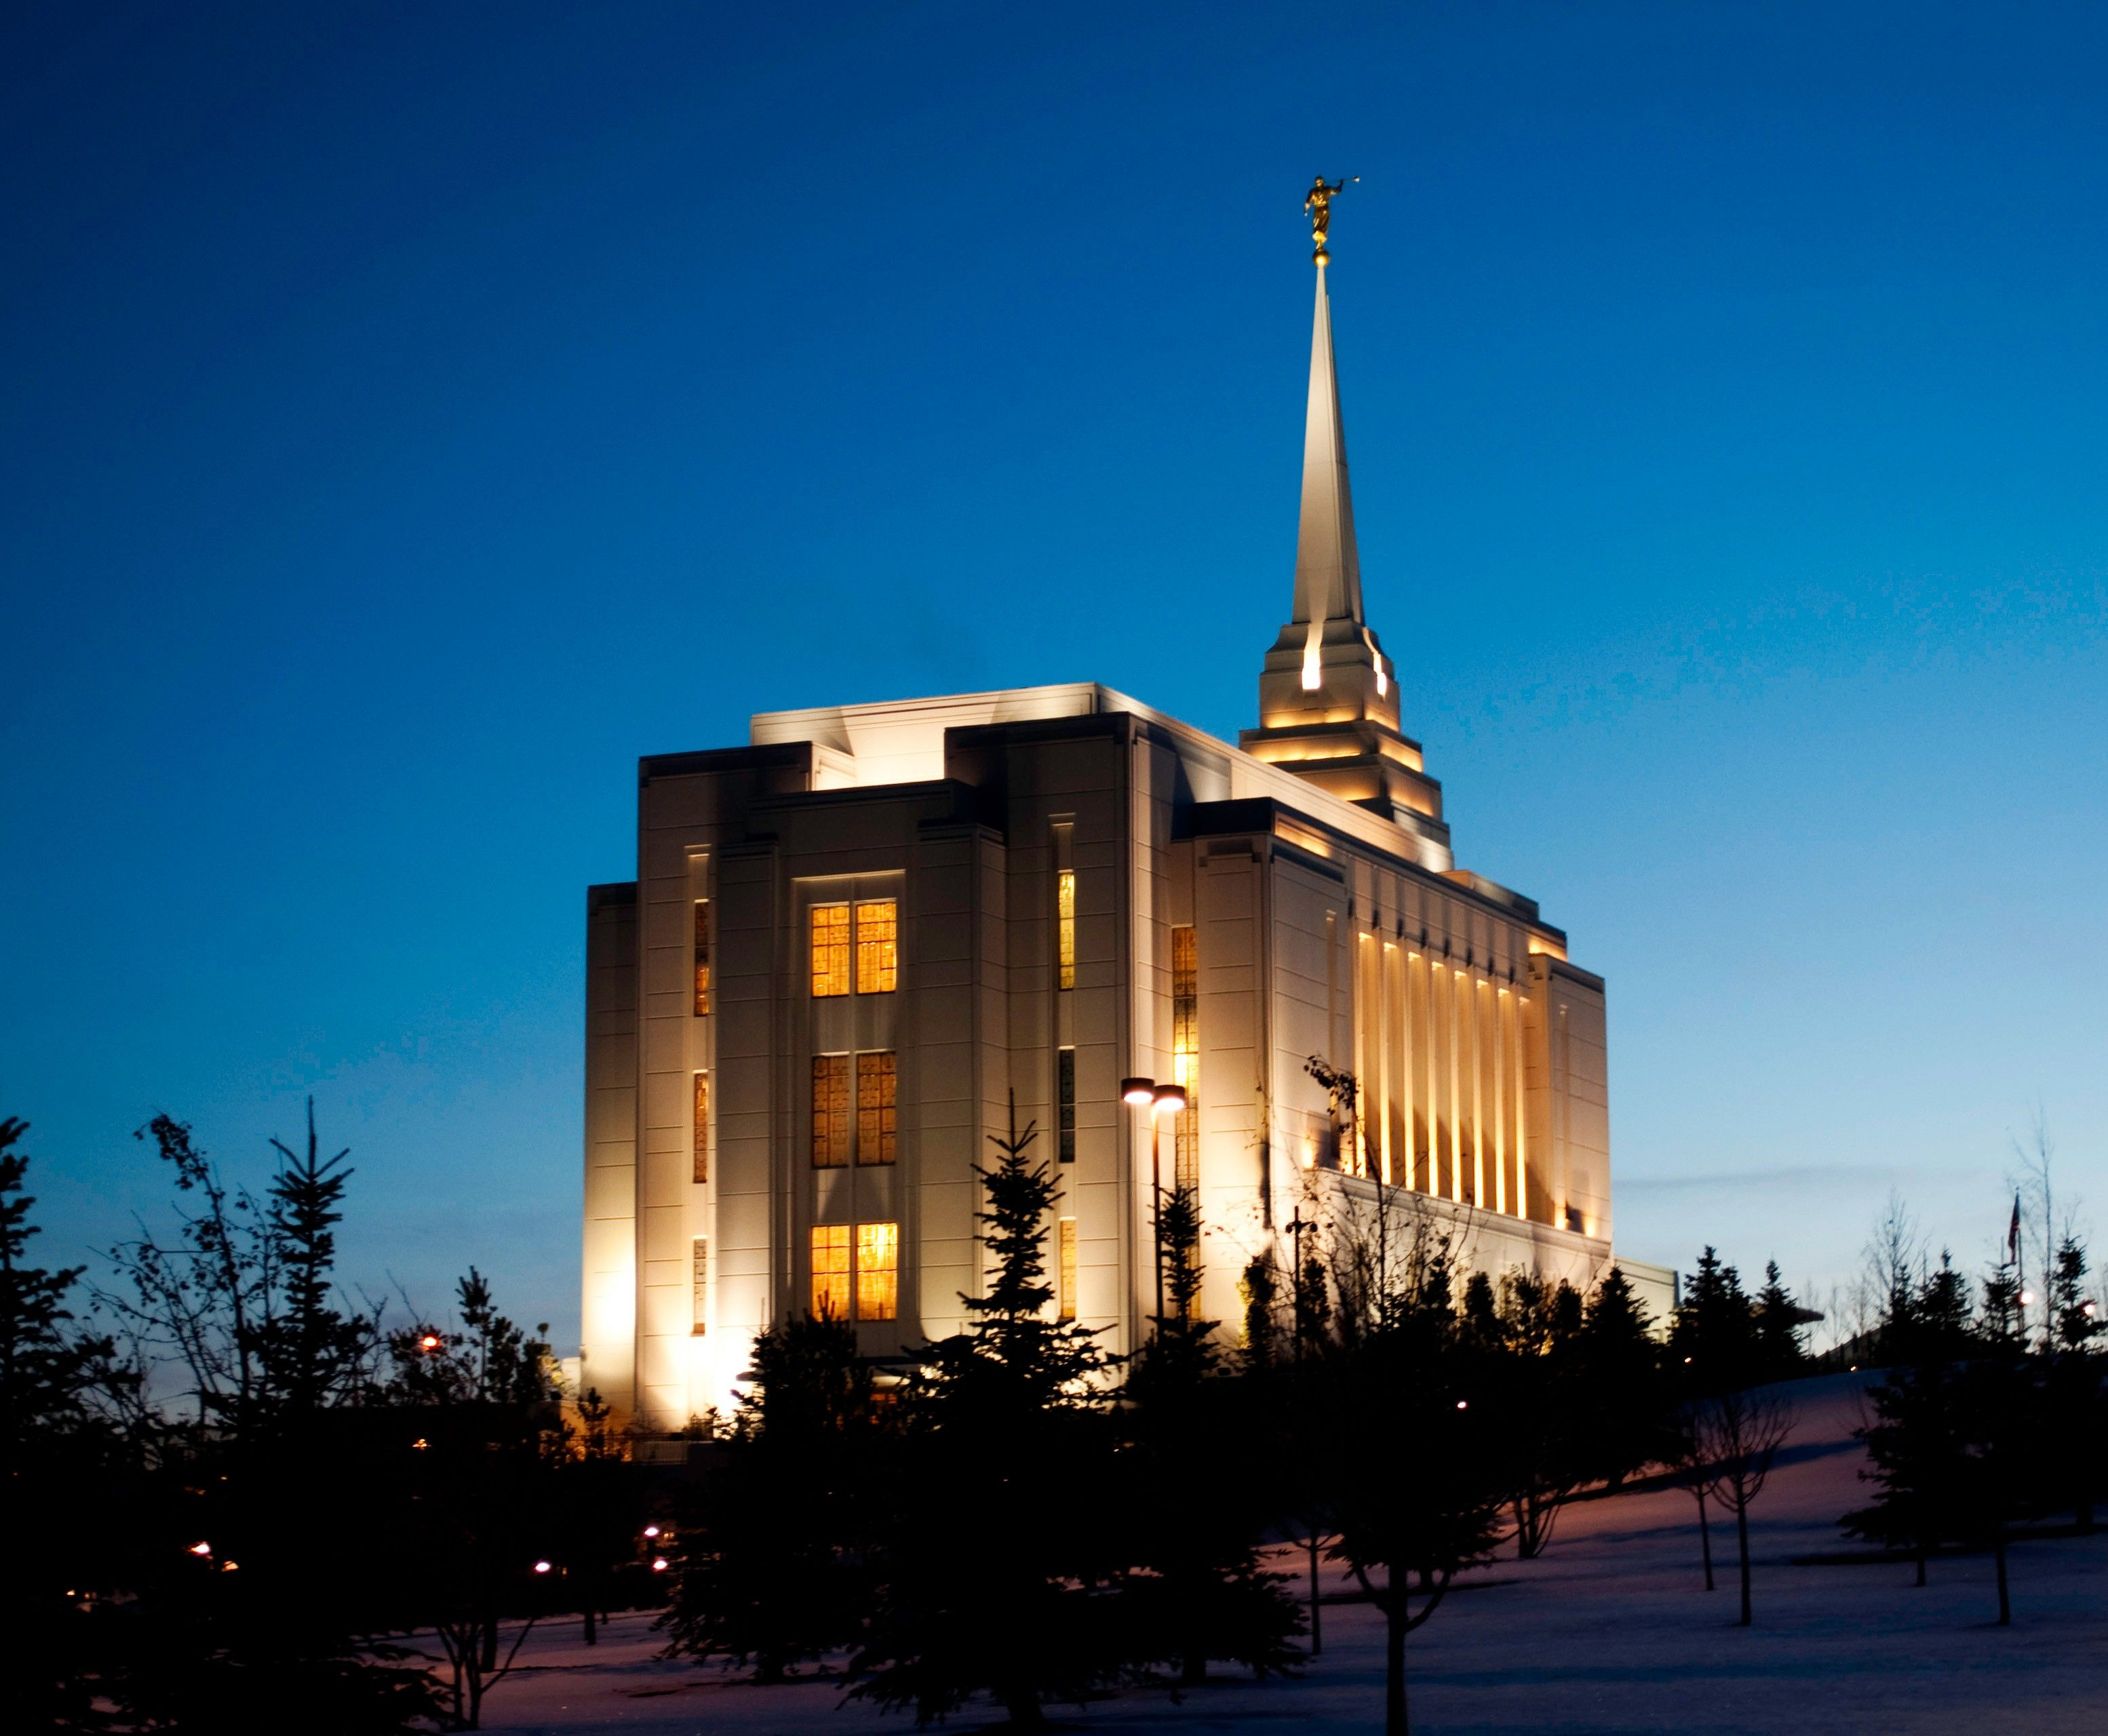 The Rexburg Idaho Temple west side in the evening, including scenery.